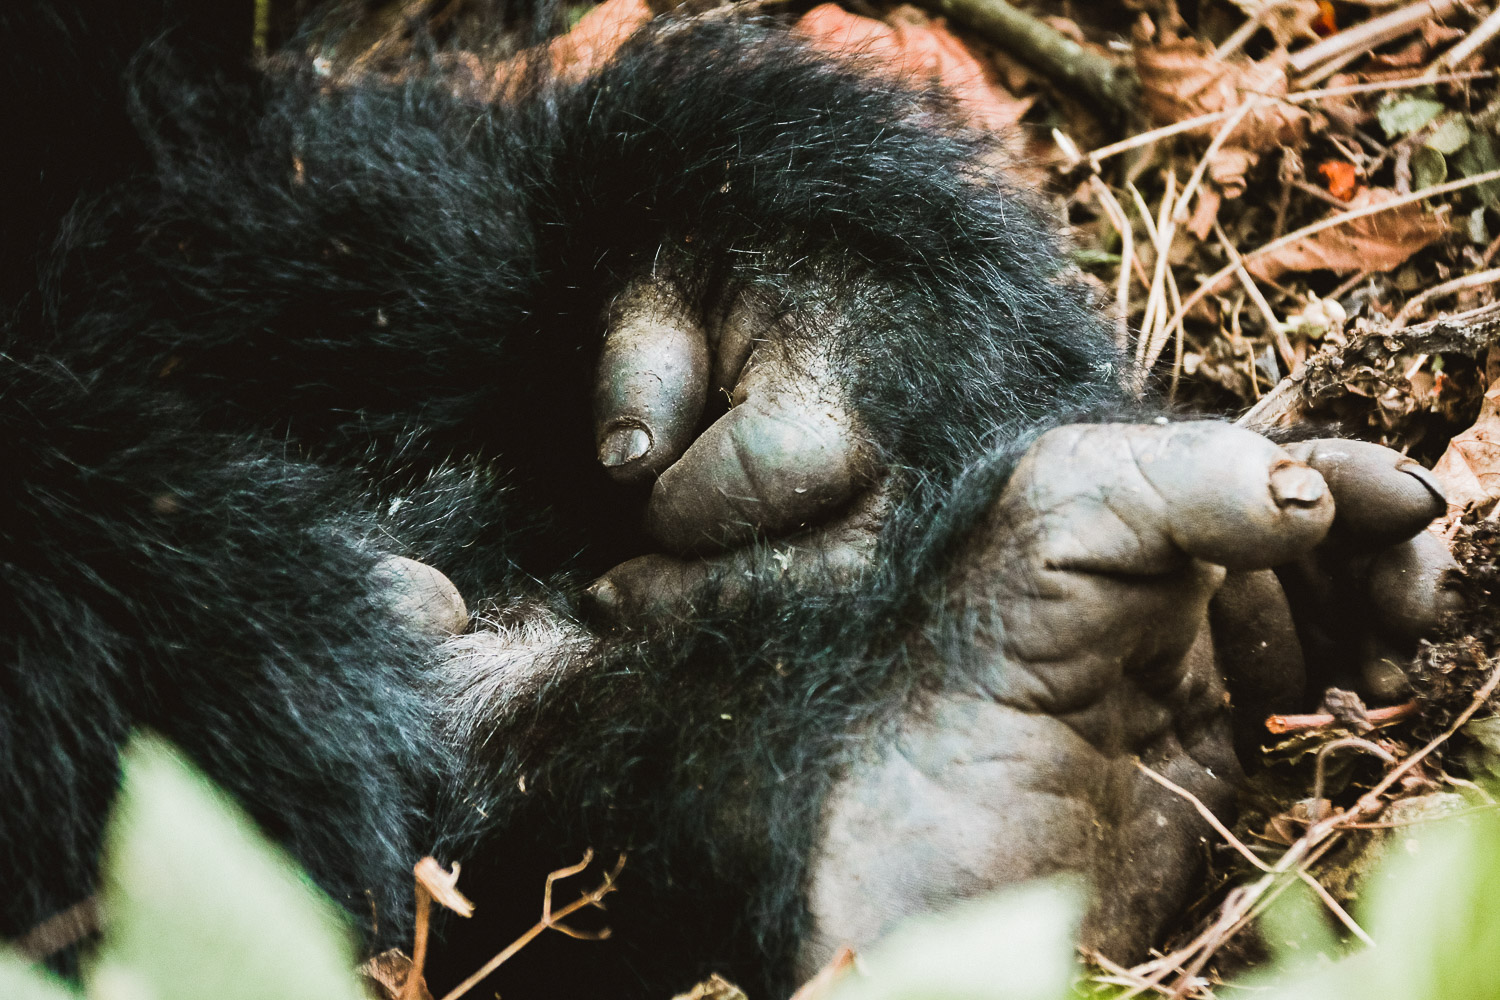 Hand and Feet of Silverback